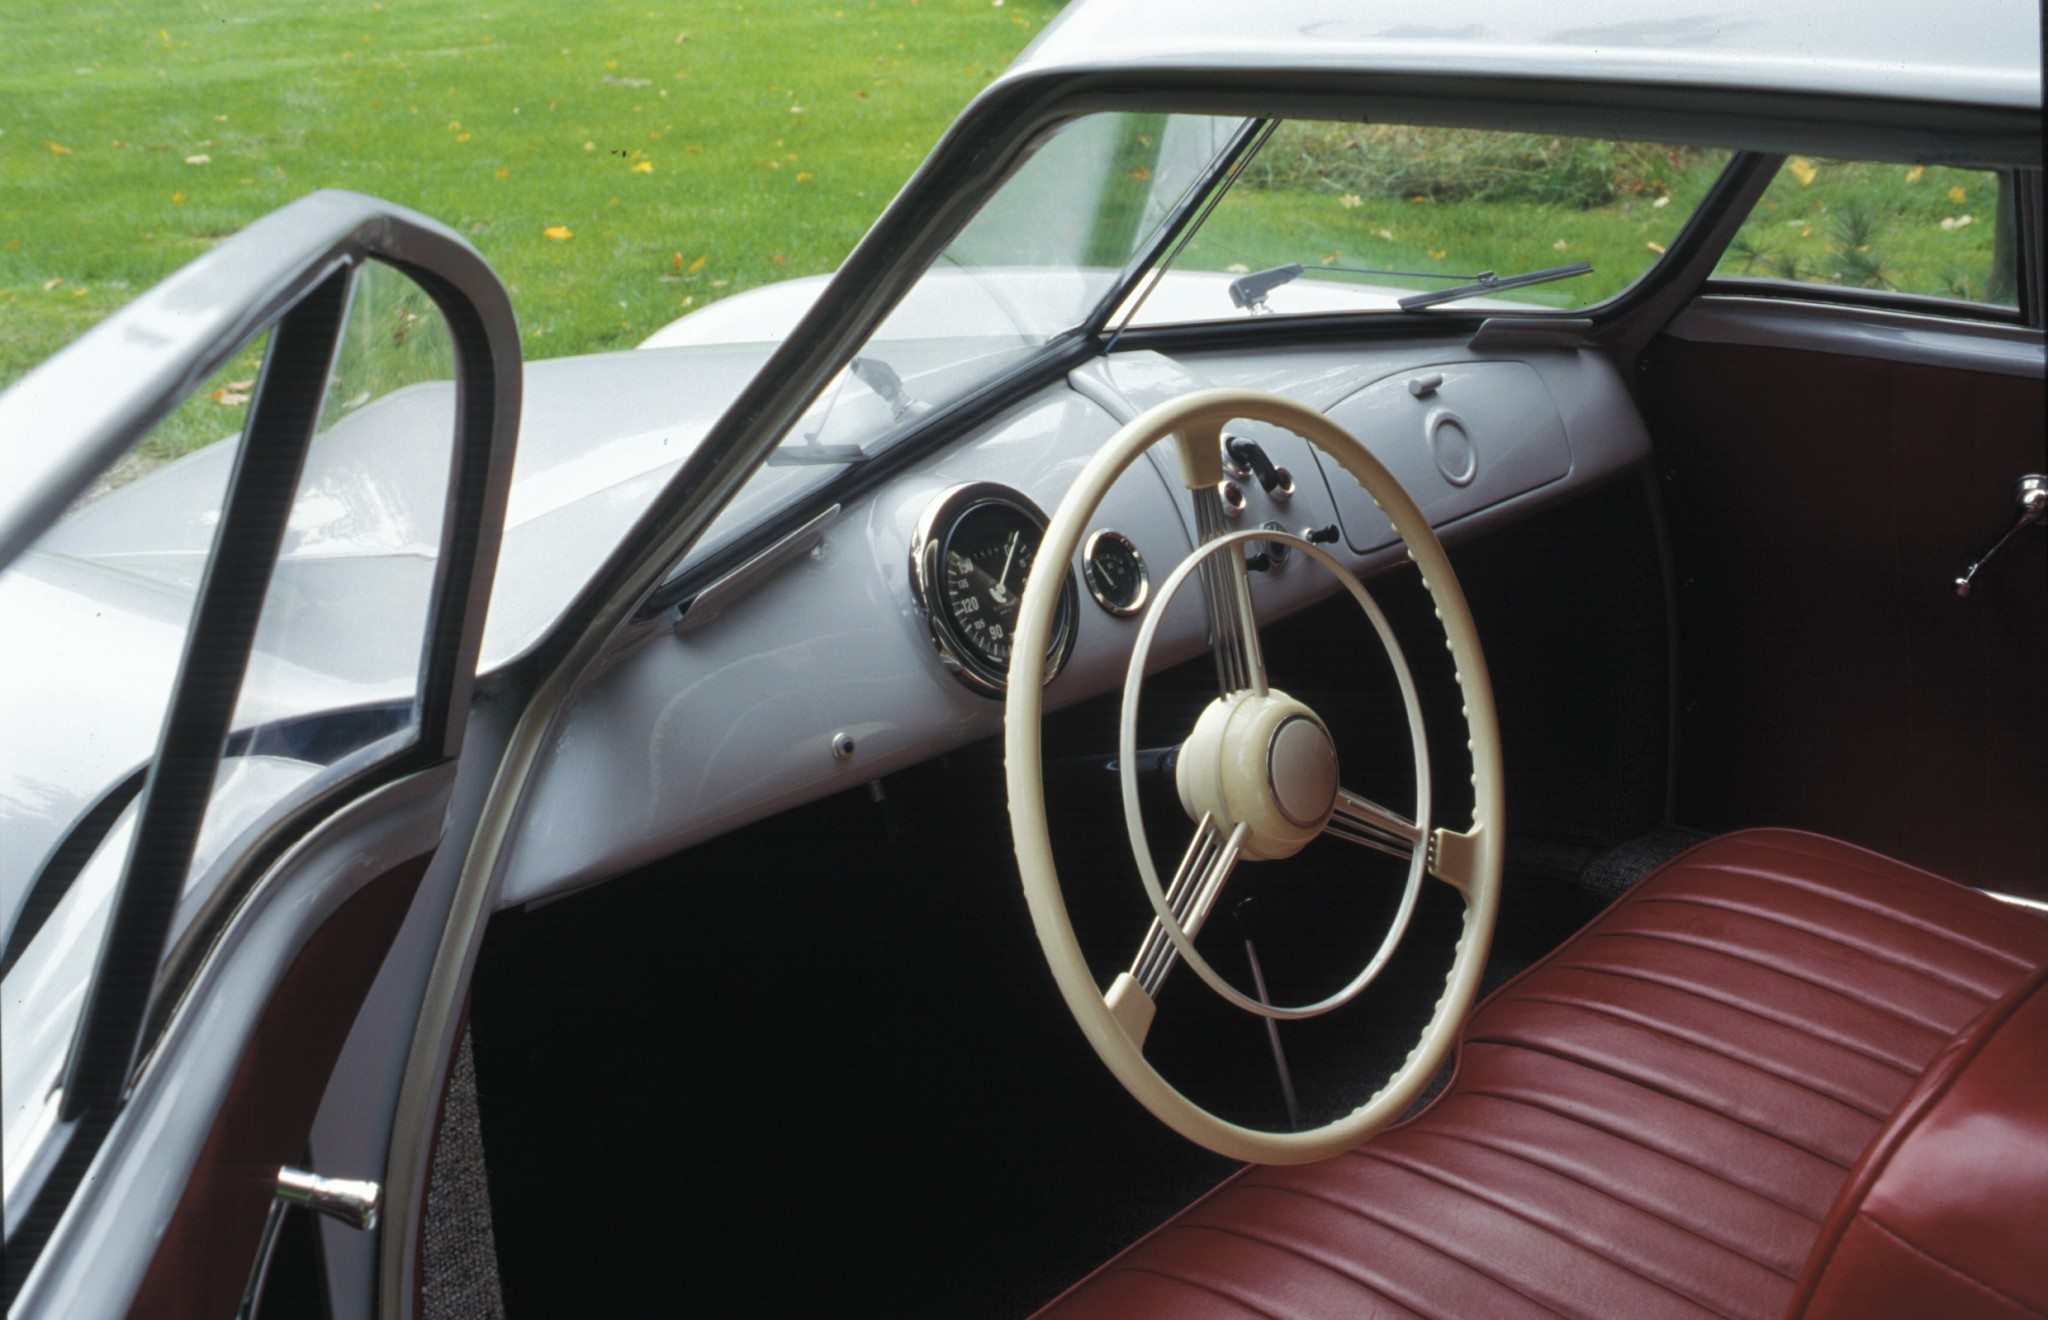 Porsche 356 interior and dash